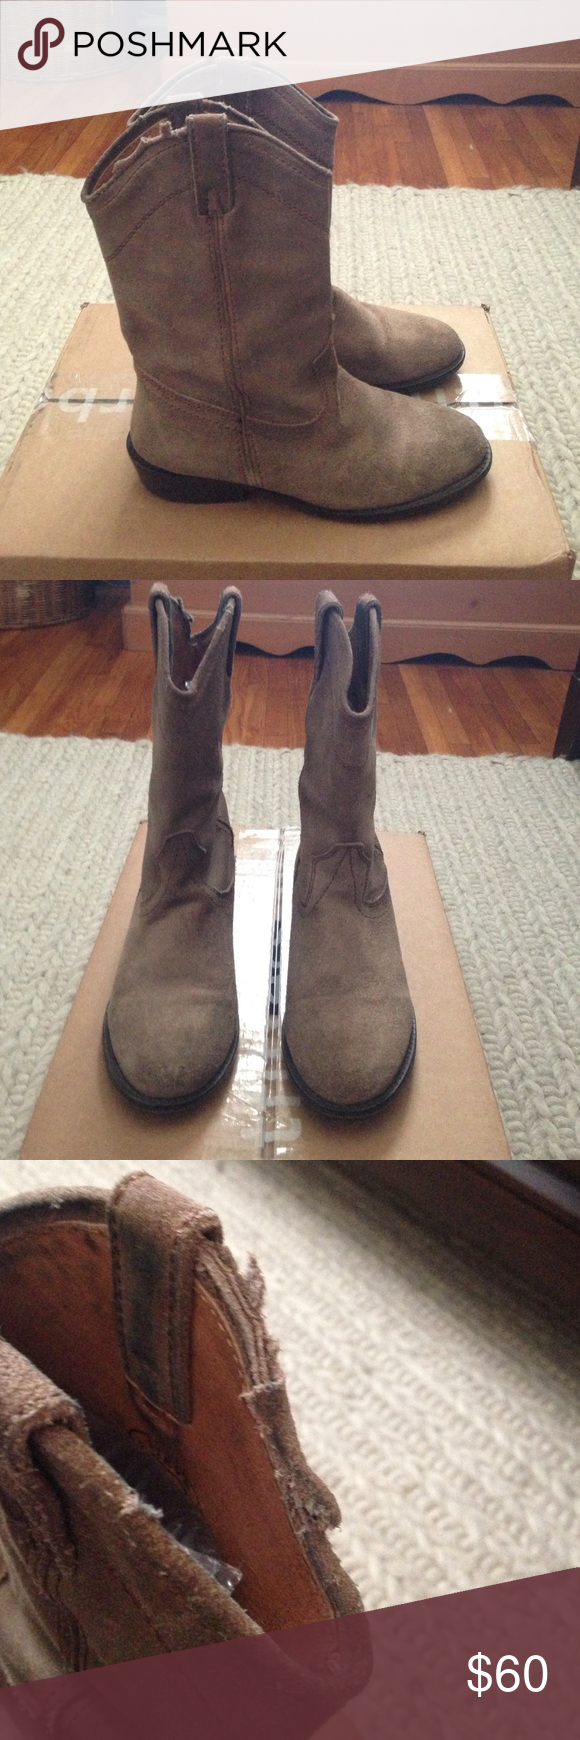 Steve Madden Cowboy Boots Lasso taupe suede boots. Gently used. Some fraying on top of one boot, see pictures. Steve Madden Shoes Ankle Boots & Booties